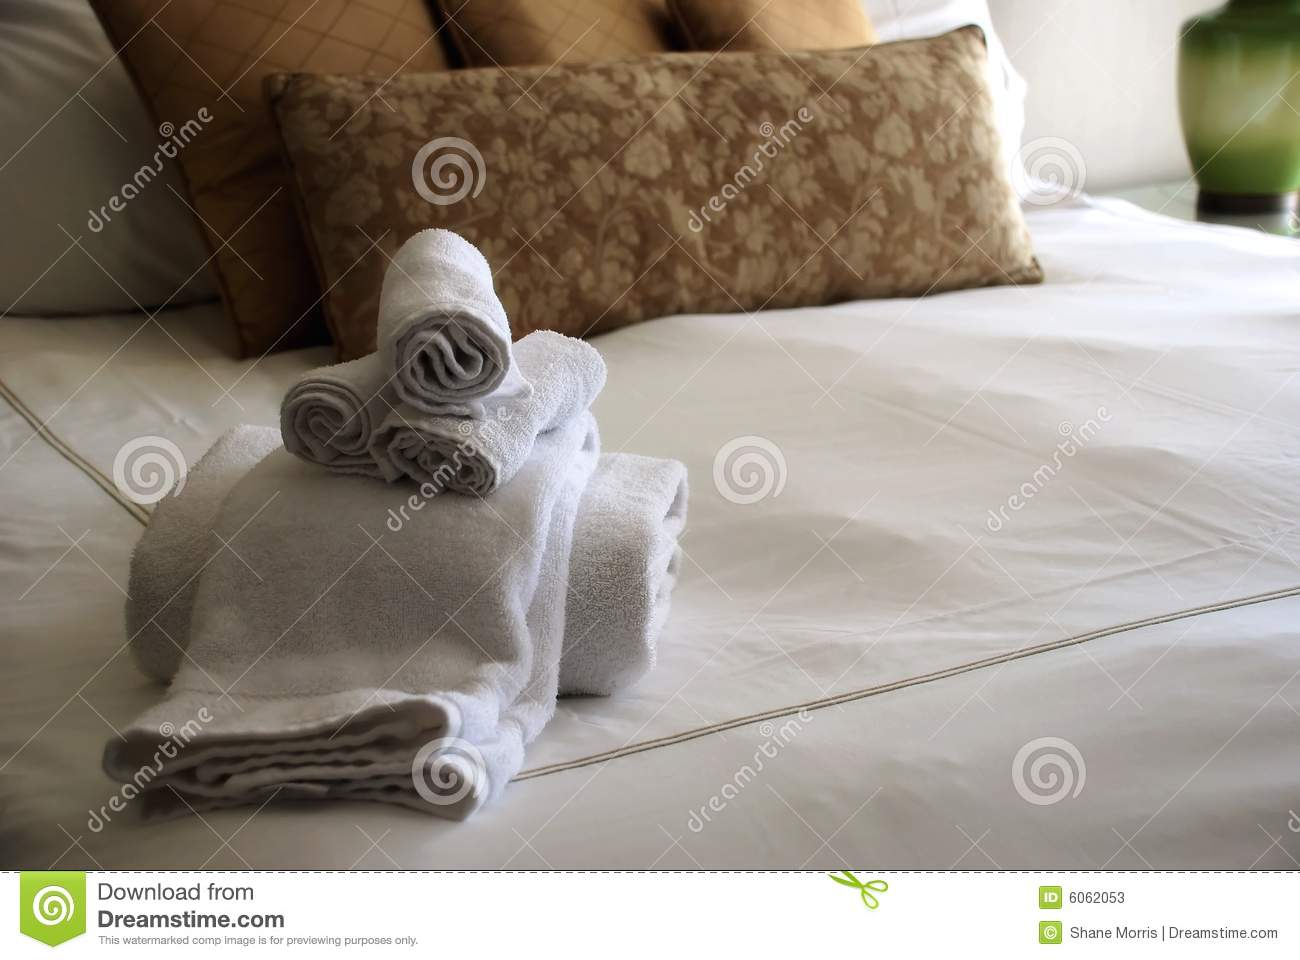 Modern hotel room interior stock photo image 18197840 - Luxury Hotel Room Bed With Towels Stock Photos